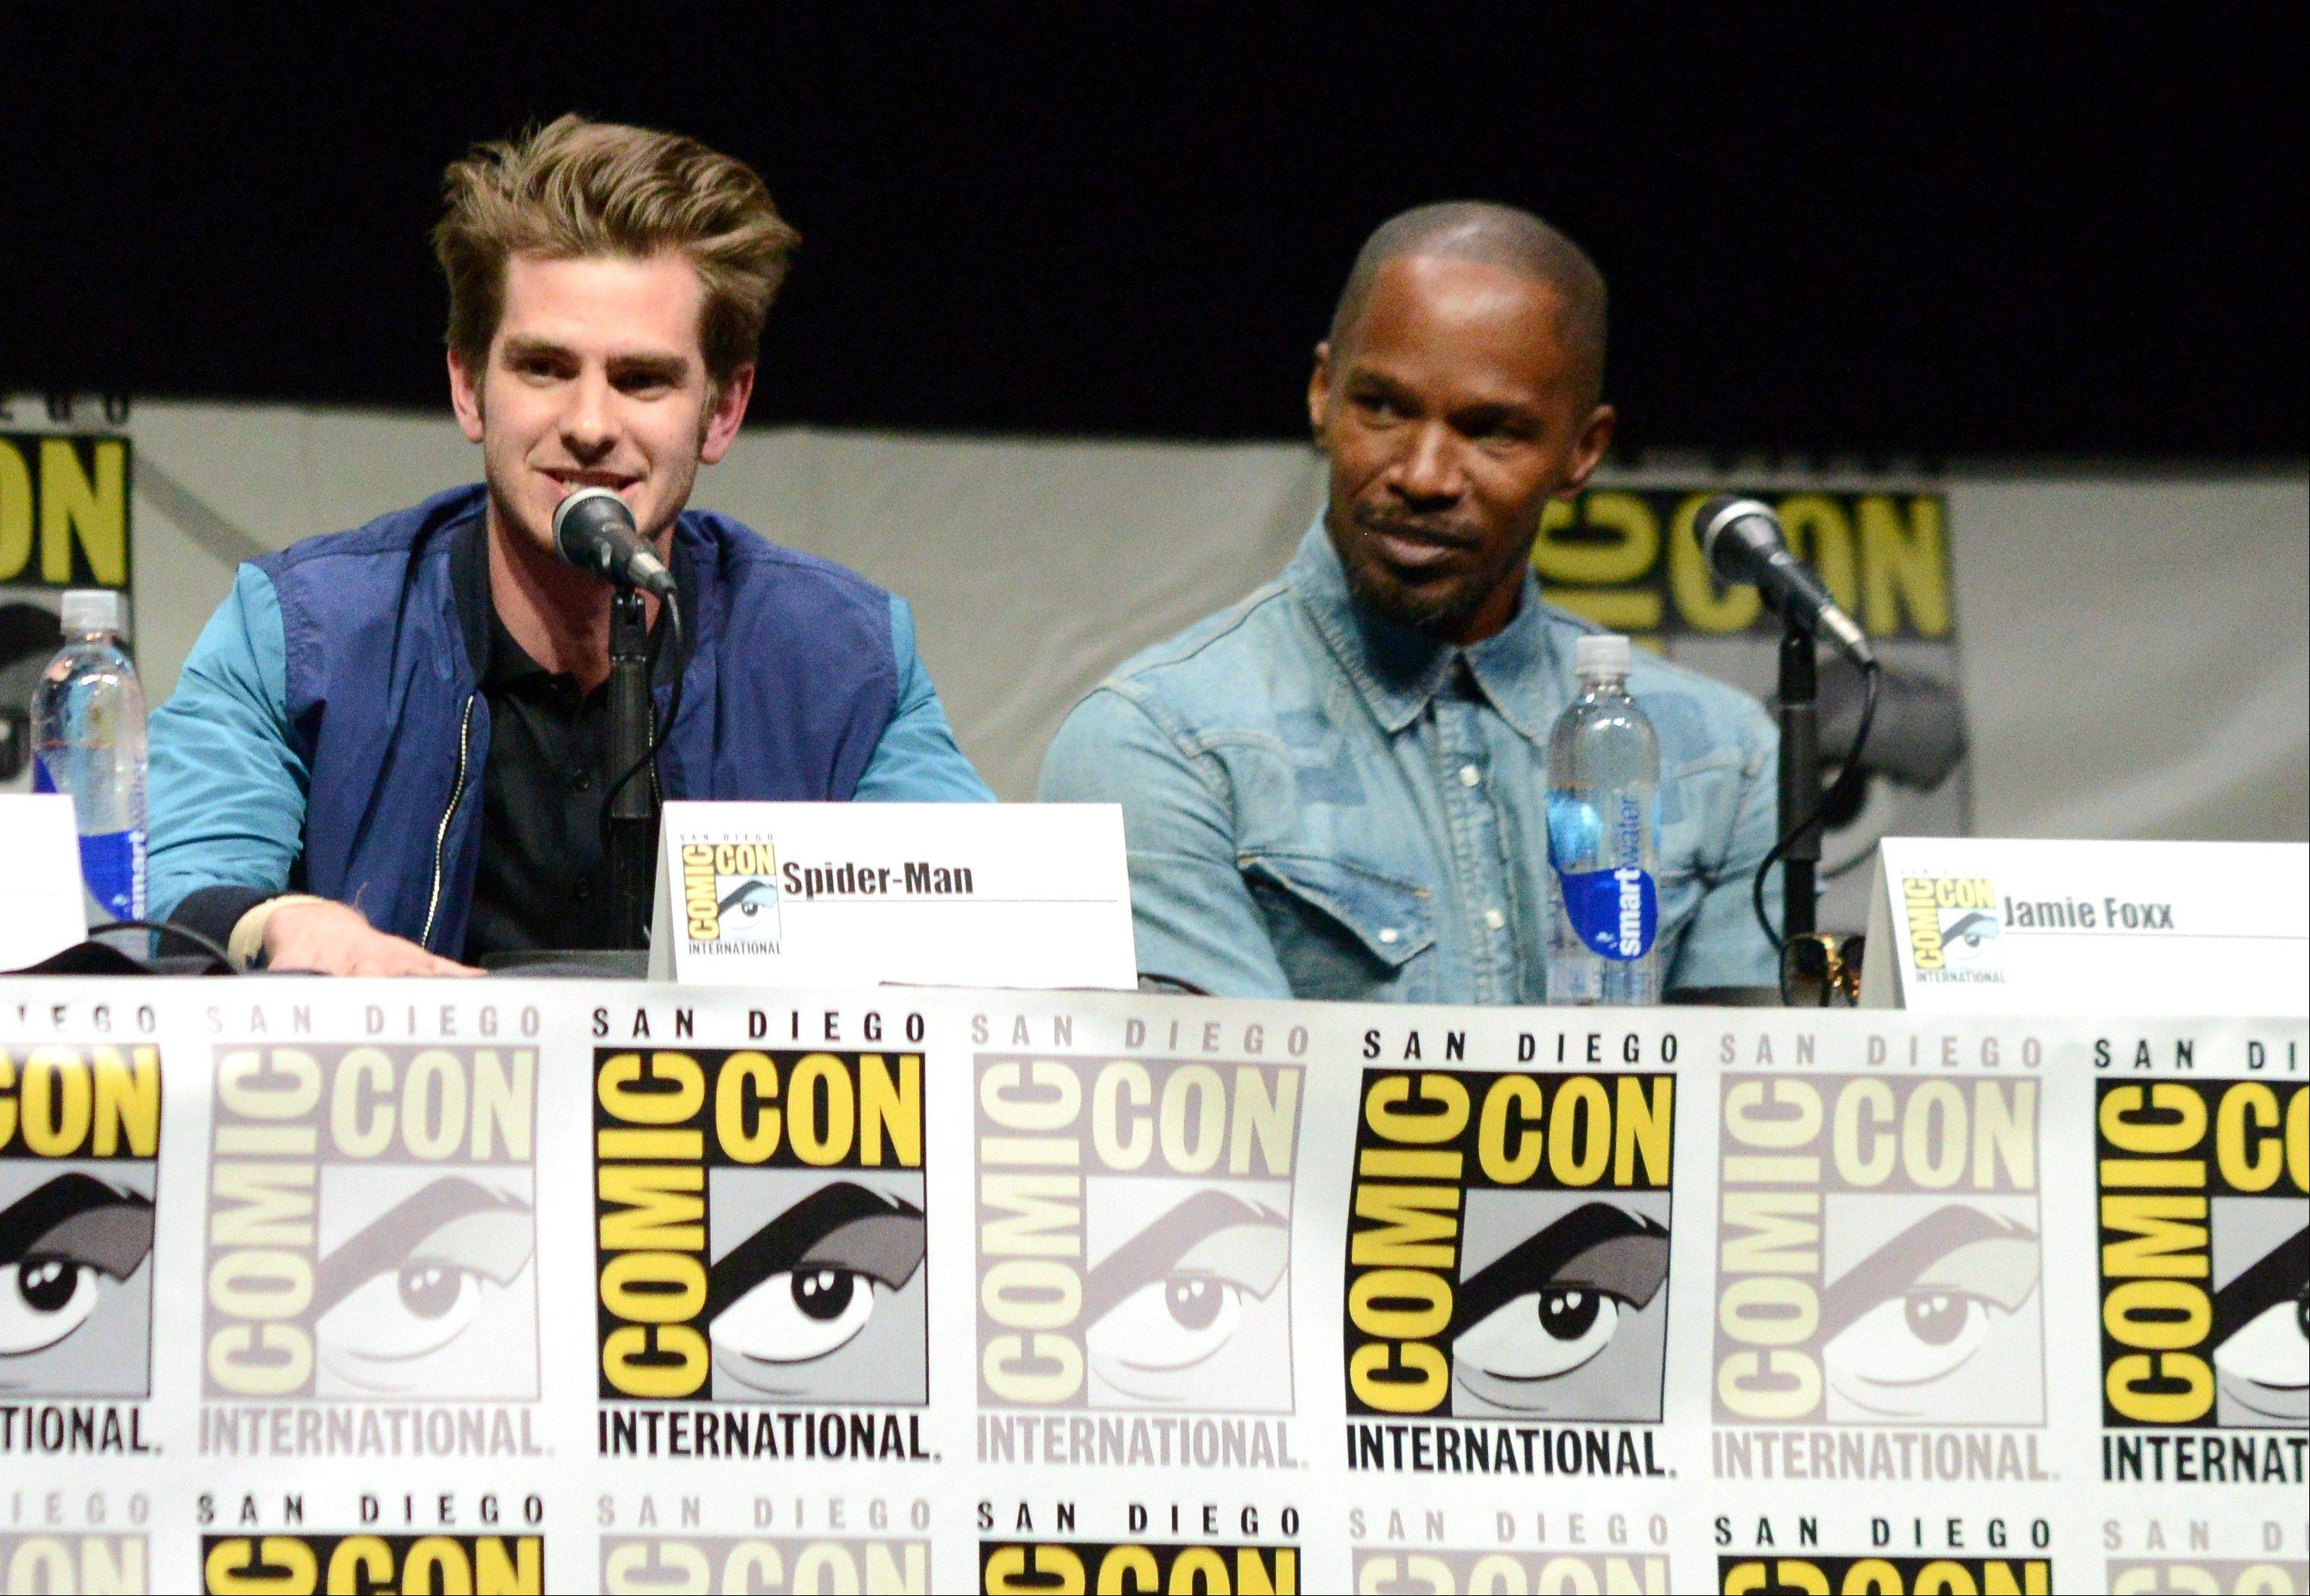 "Actors Andrew Garfield (Spider-Man), left, and Jamie Foxx (Electro) attend the ""The Amazing Spider-Man 2"" panel Friday at Comic-Con International in San Diego."